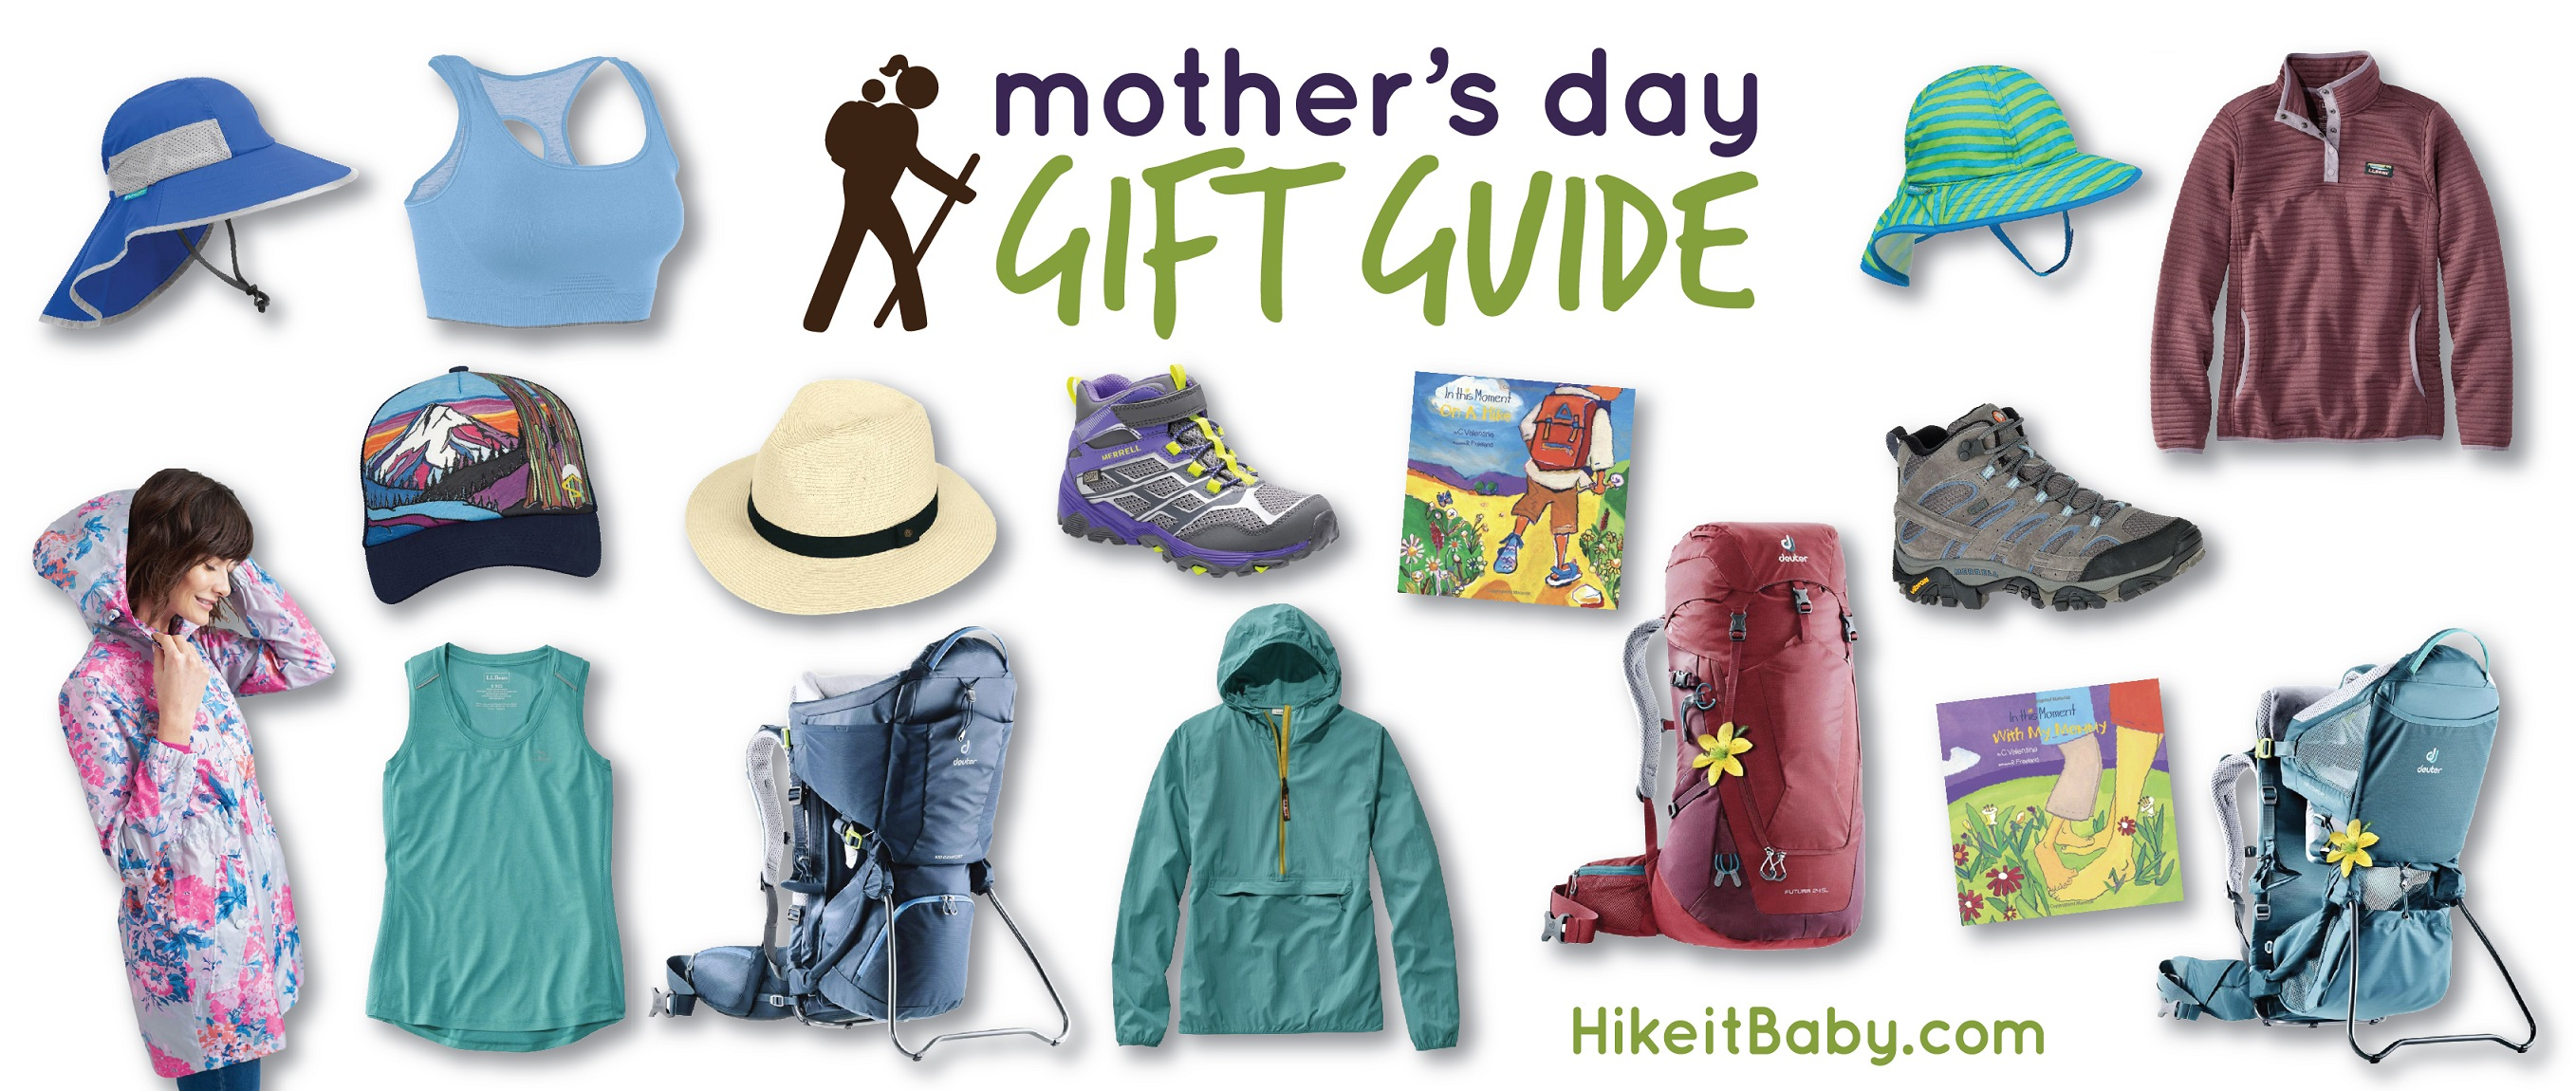 Mother's Day Gift Guide 2019 for Hike it Baby